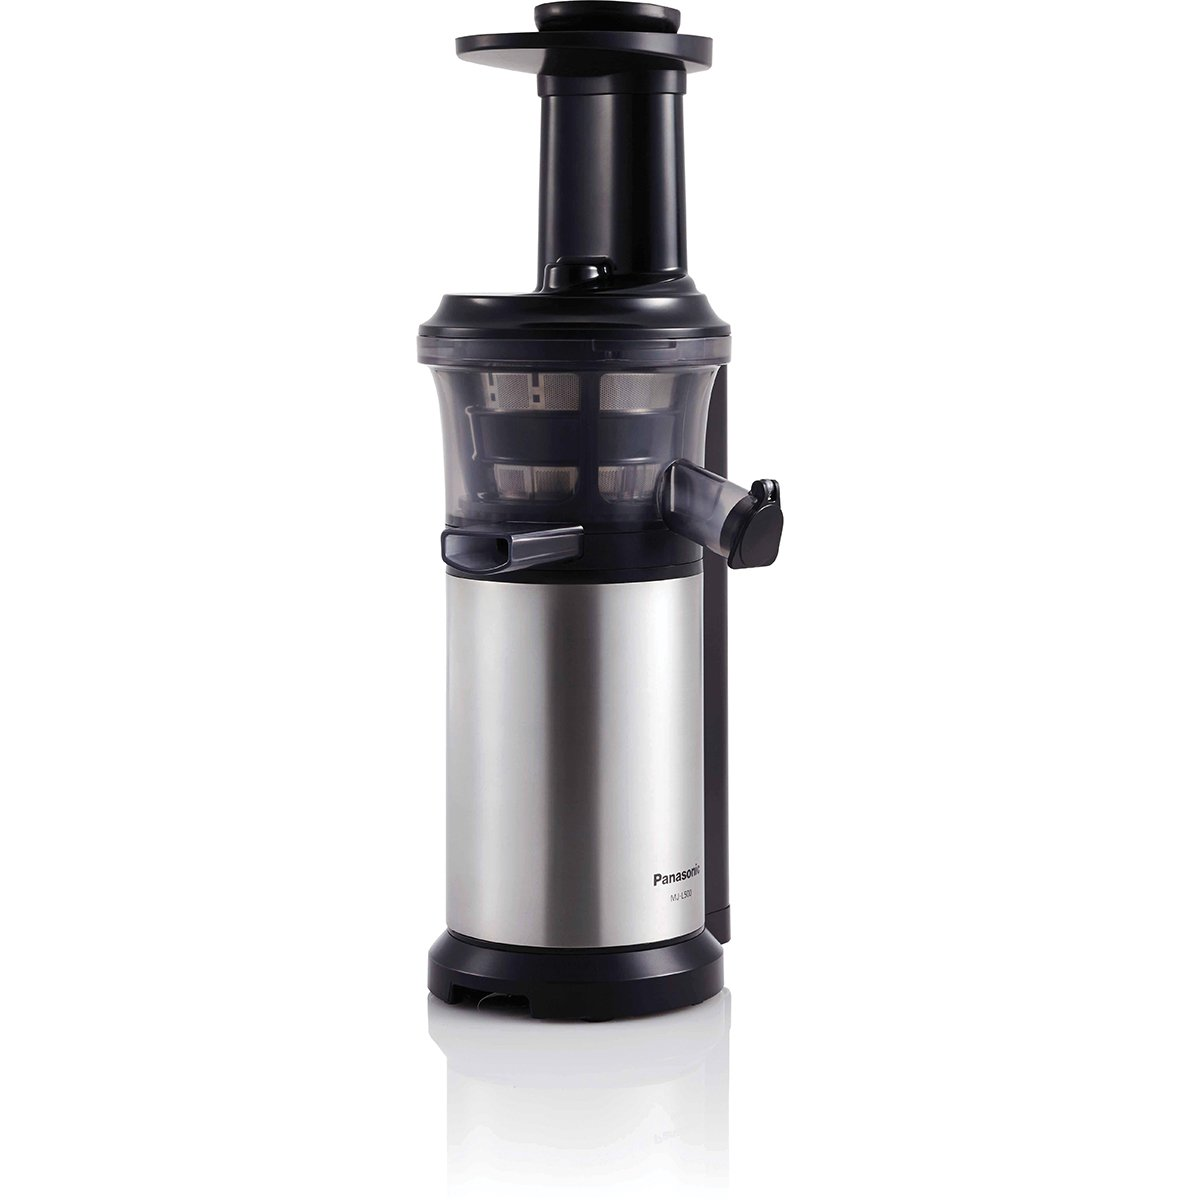 Panasonic Slow Juicer Cleaning : Panasonic MJ-L500SST Slow Juicer Appliances Online